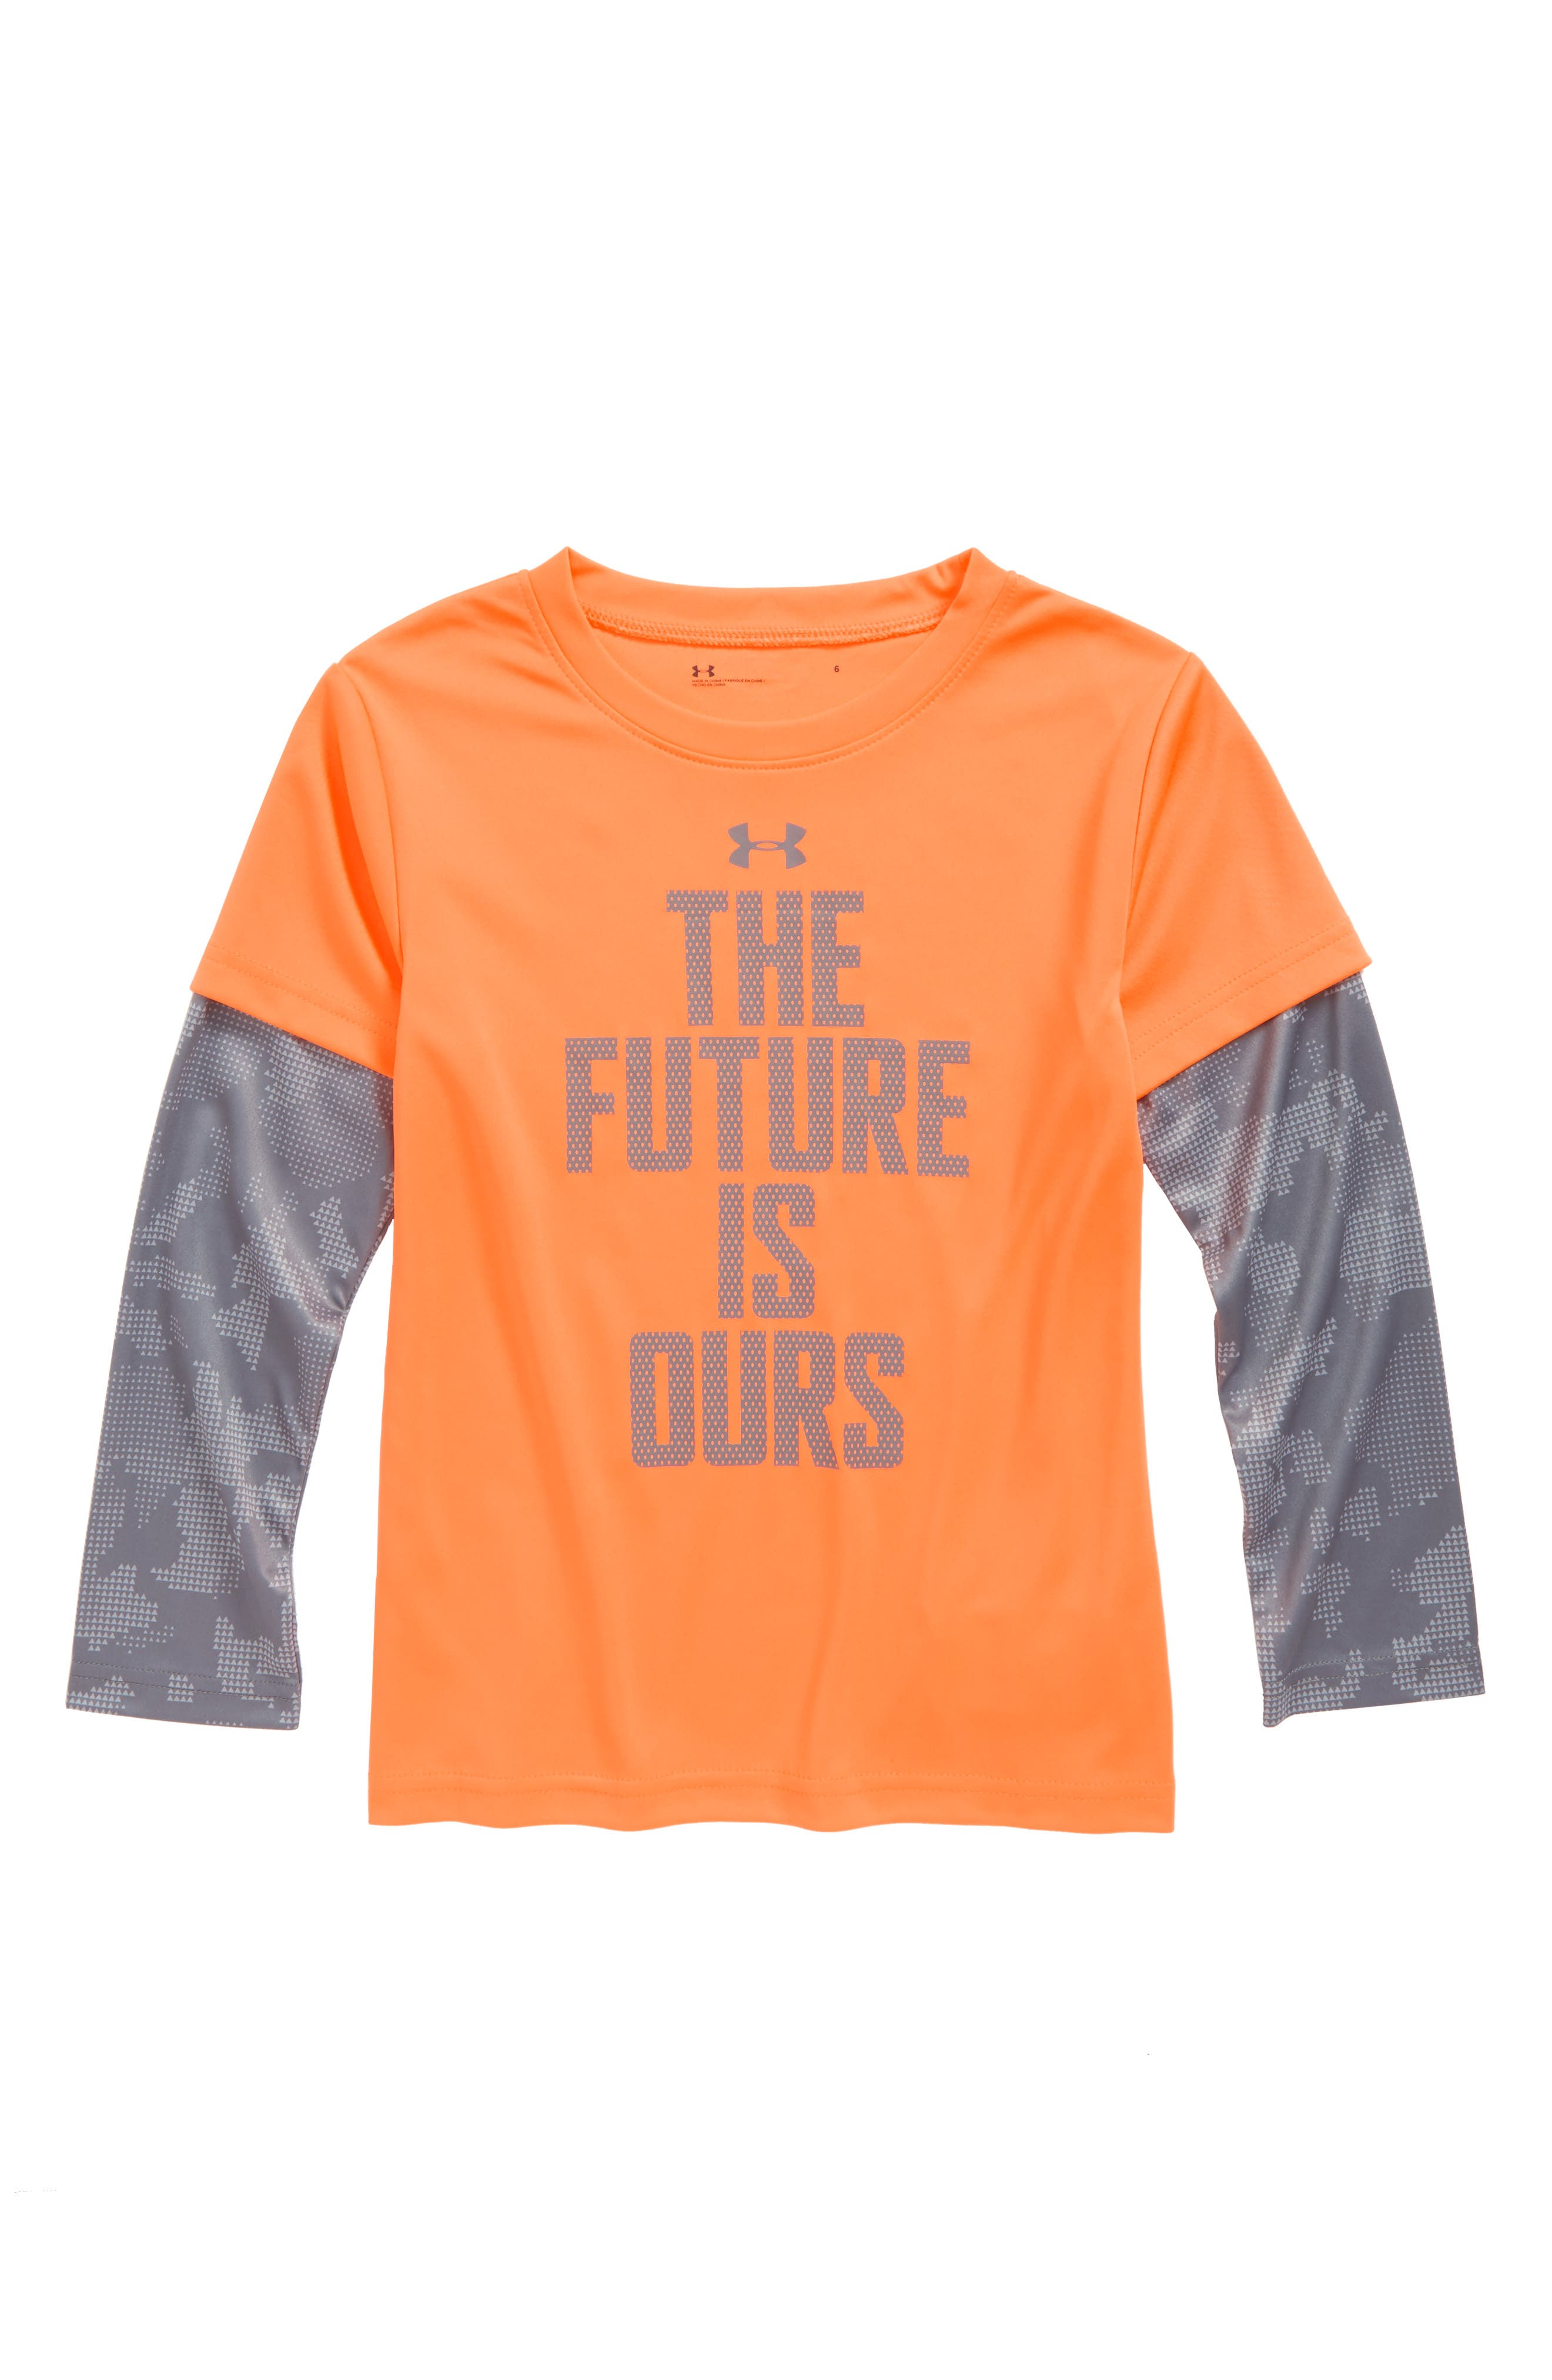 Under Armour The Future Is Ours Graphic T-Shirt (Toddler Boys & Little Boys)